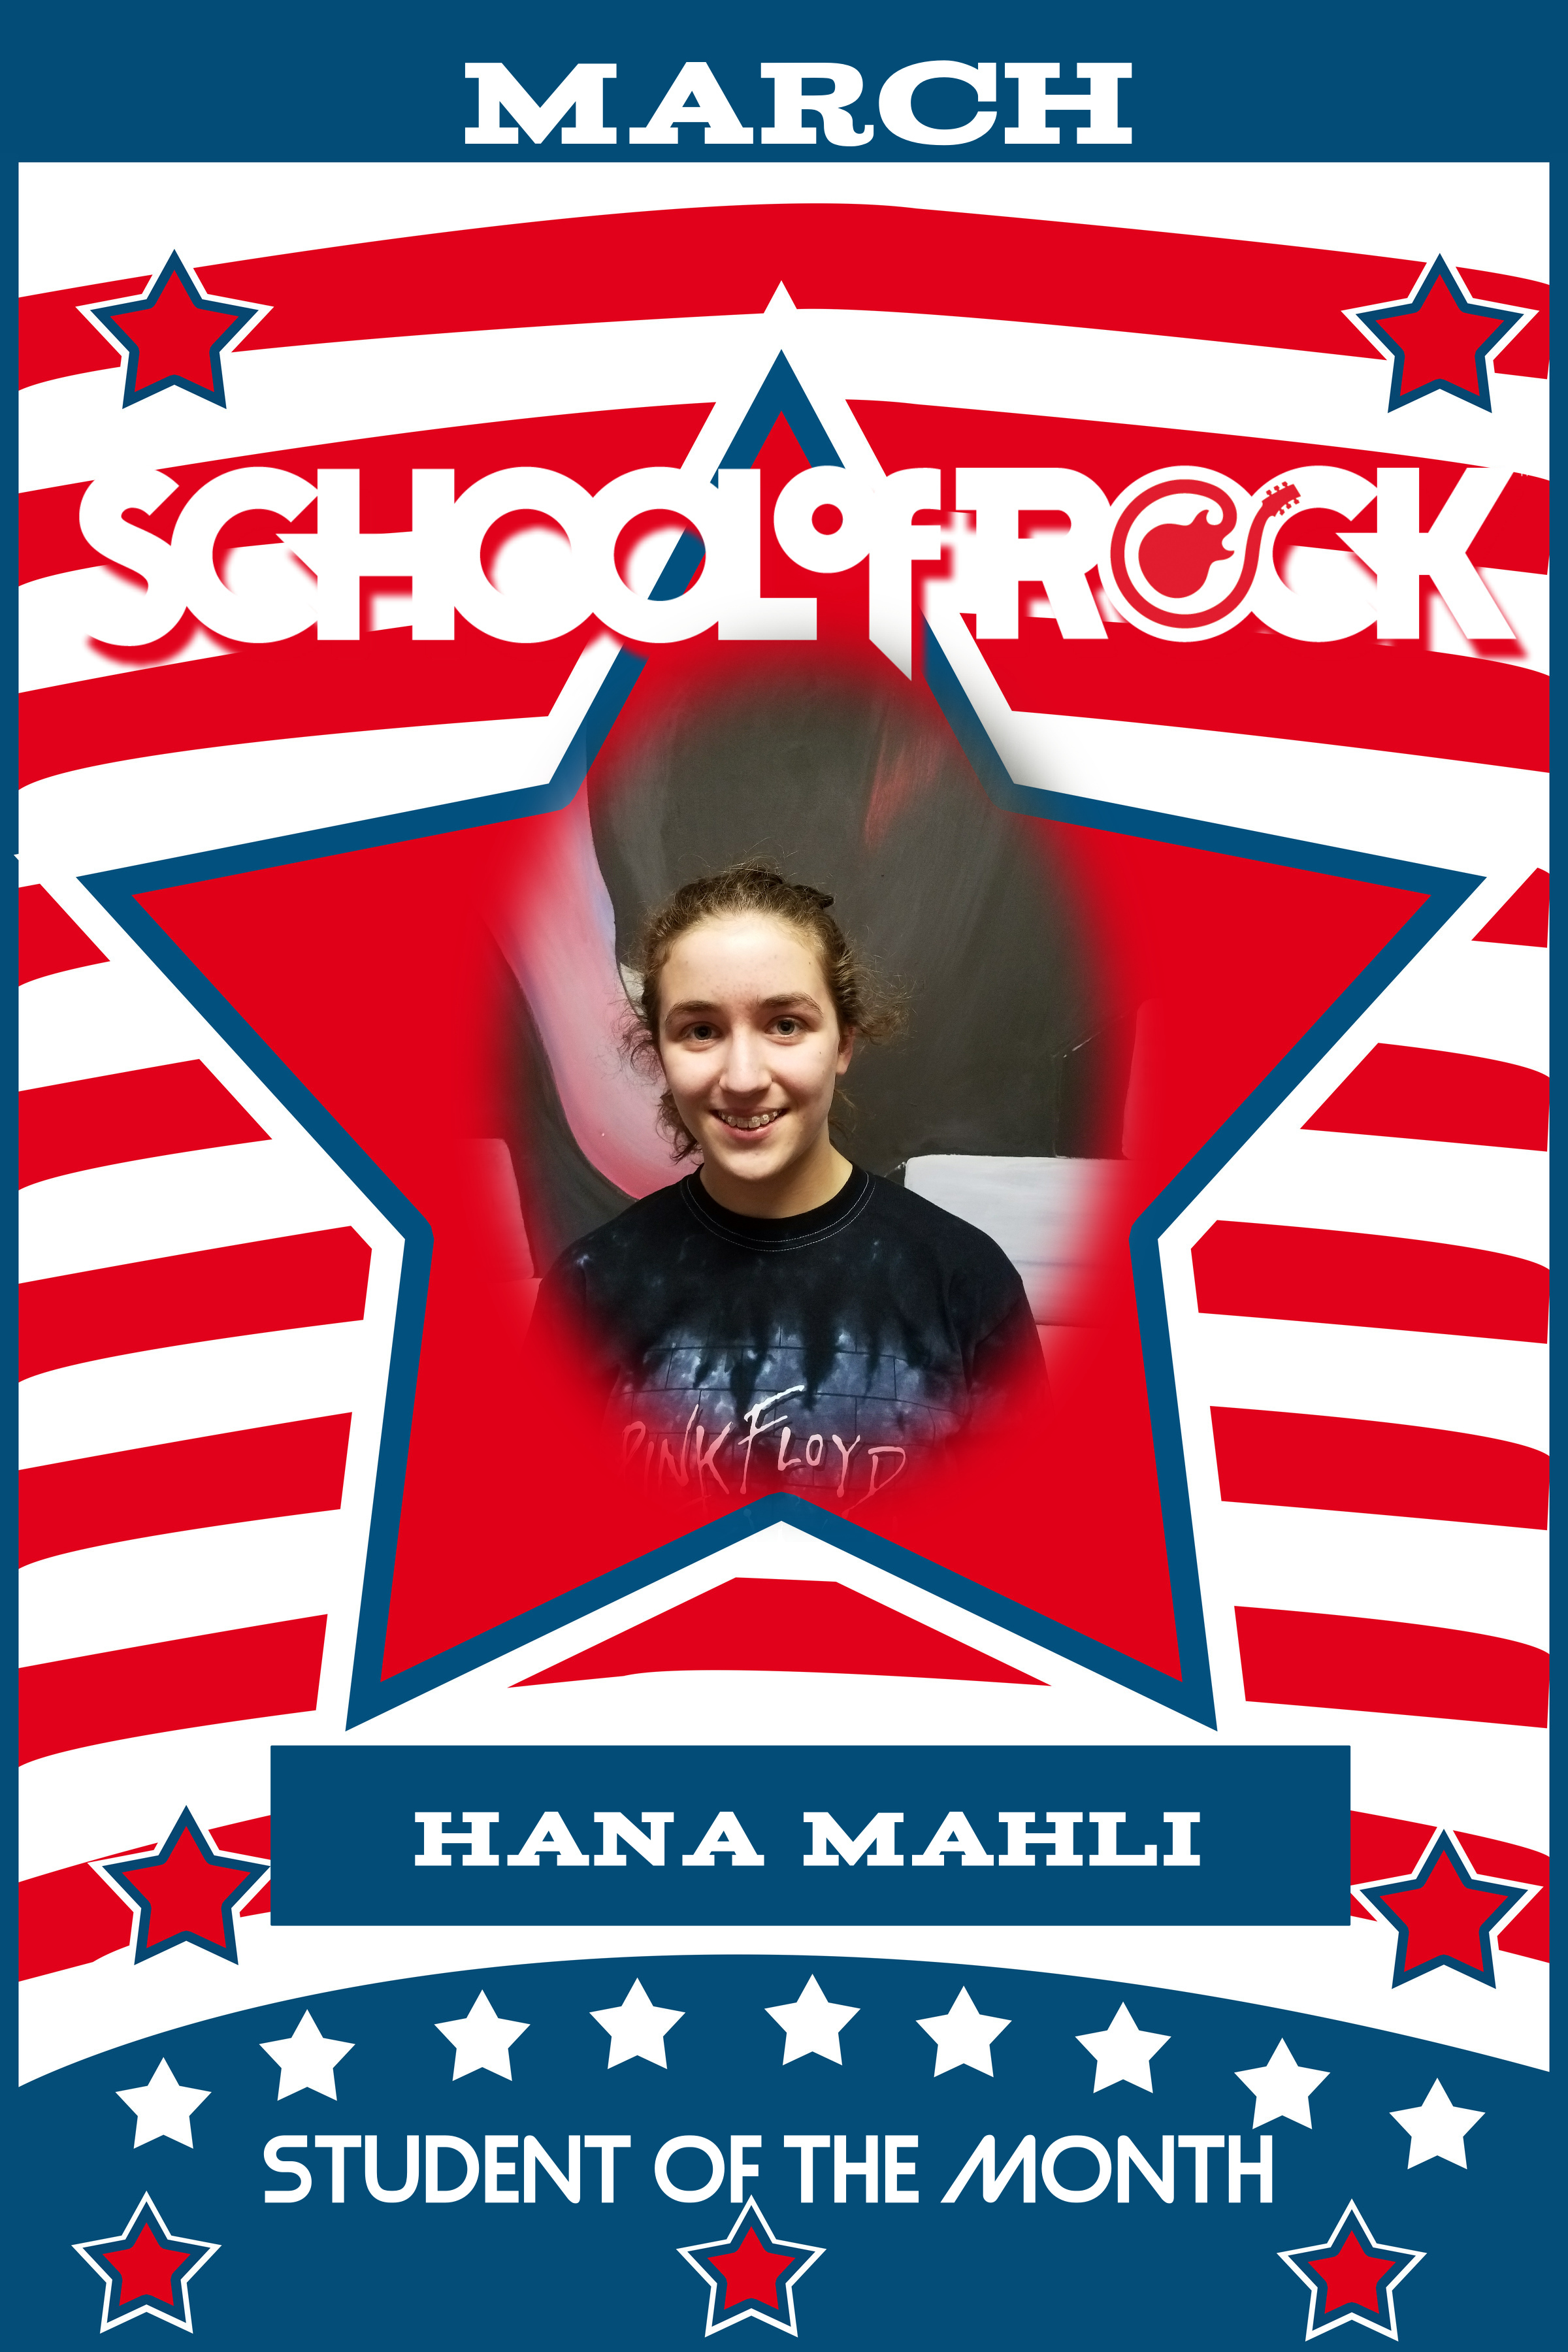 Image of March Student of the Month